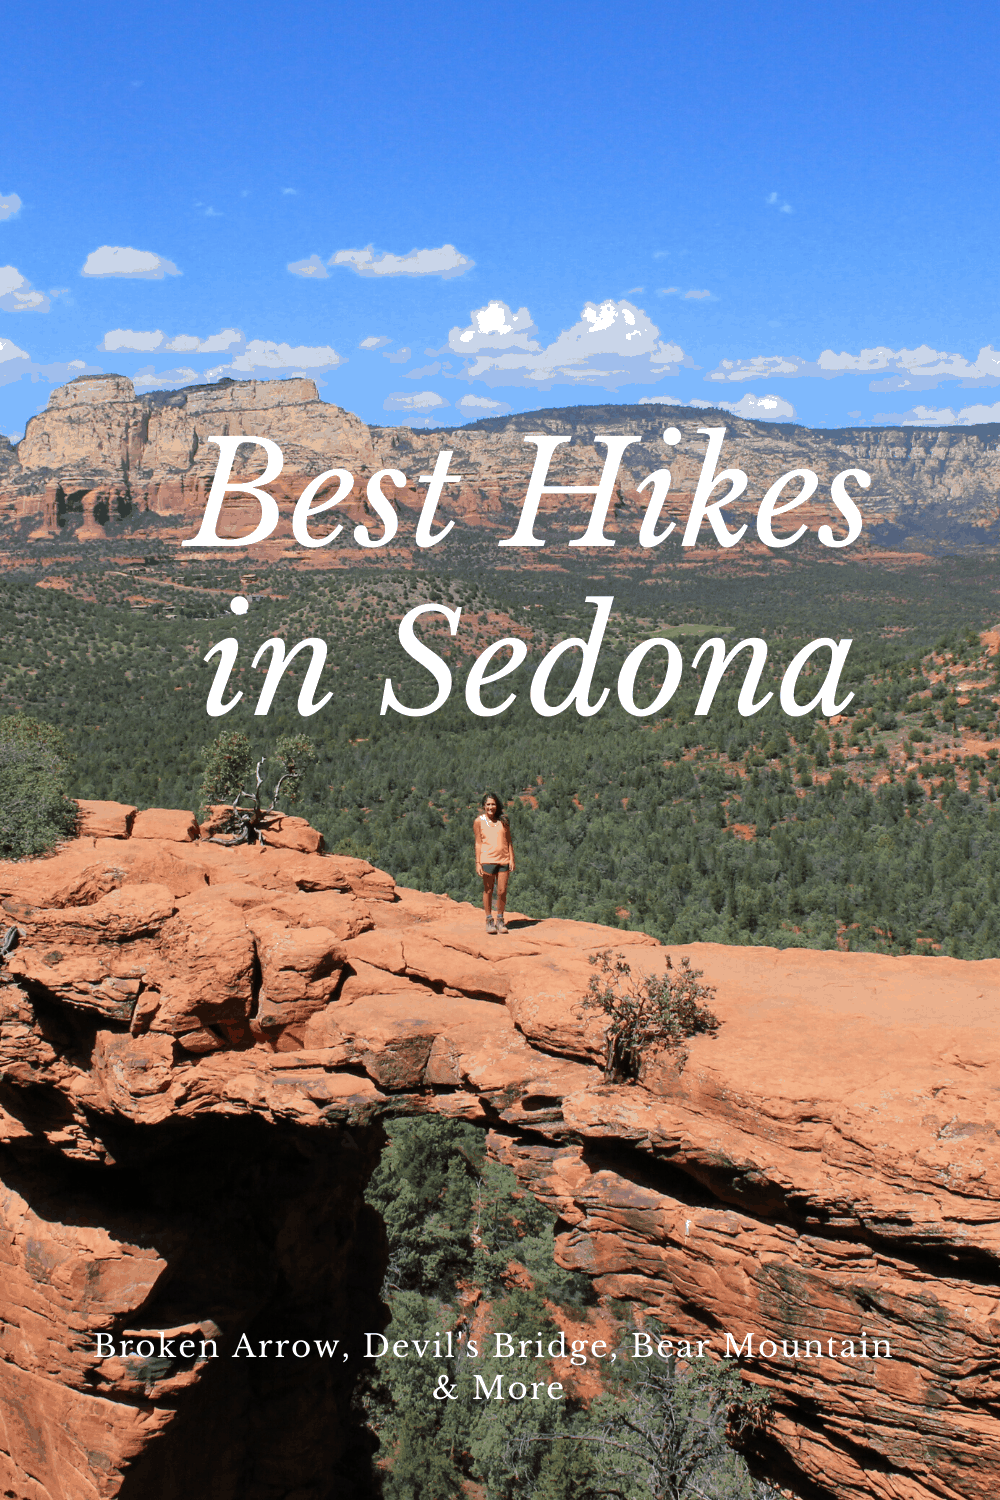 Best Hikes in Sedona Arizona